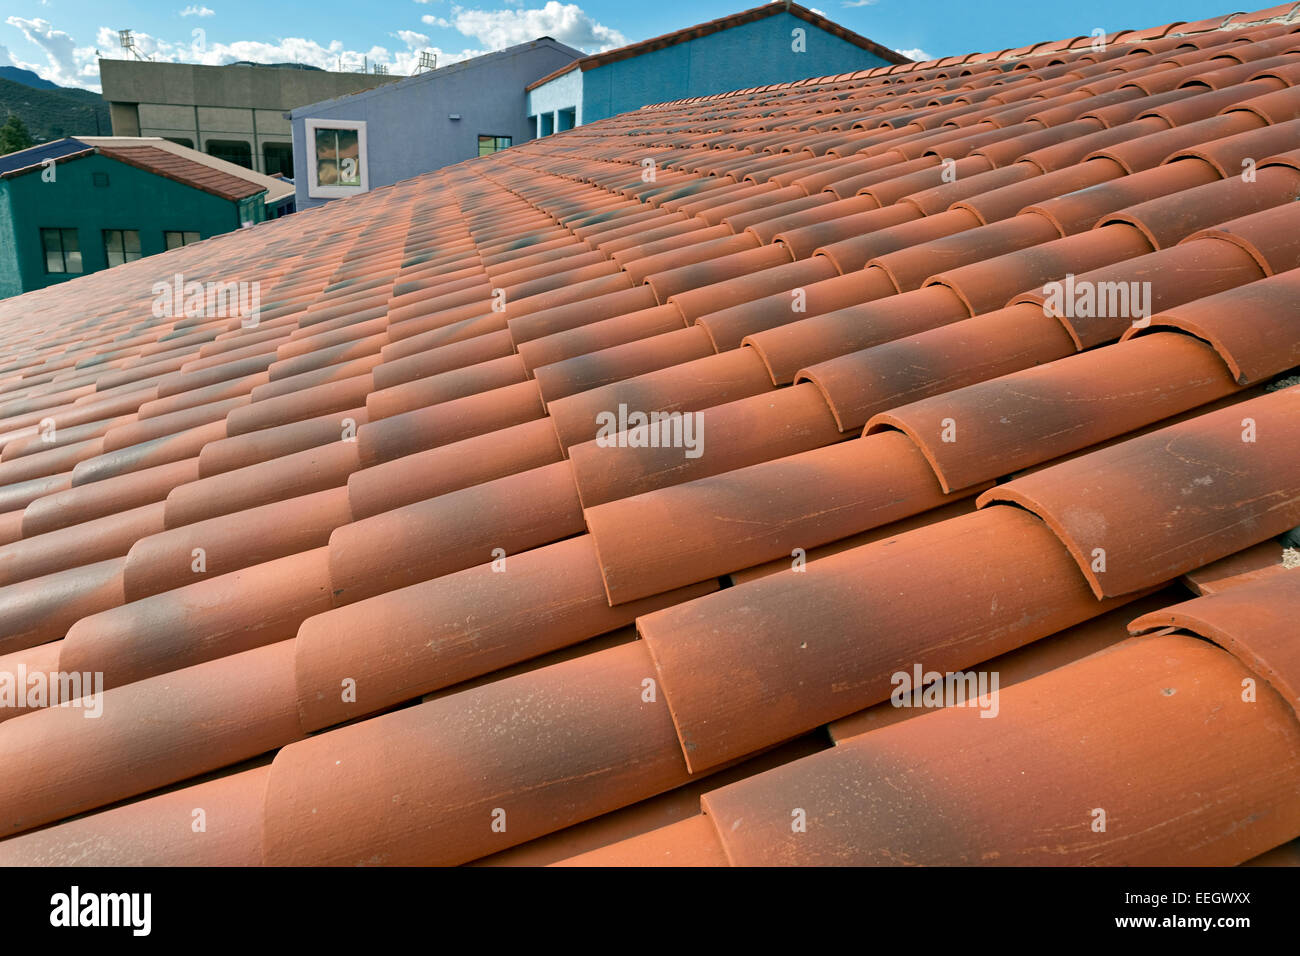 Looking across a red Spanish tiled roof, Tucson, Arizona - Stock Image